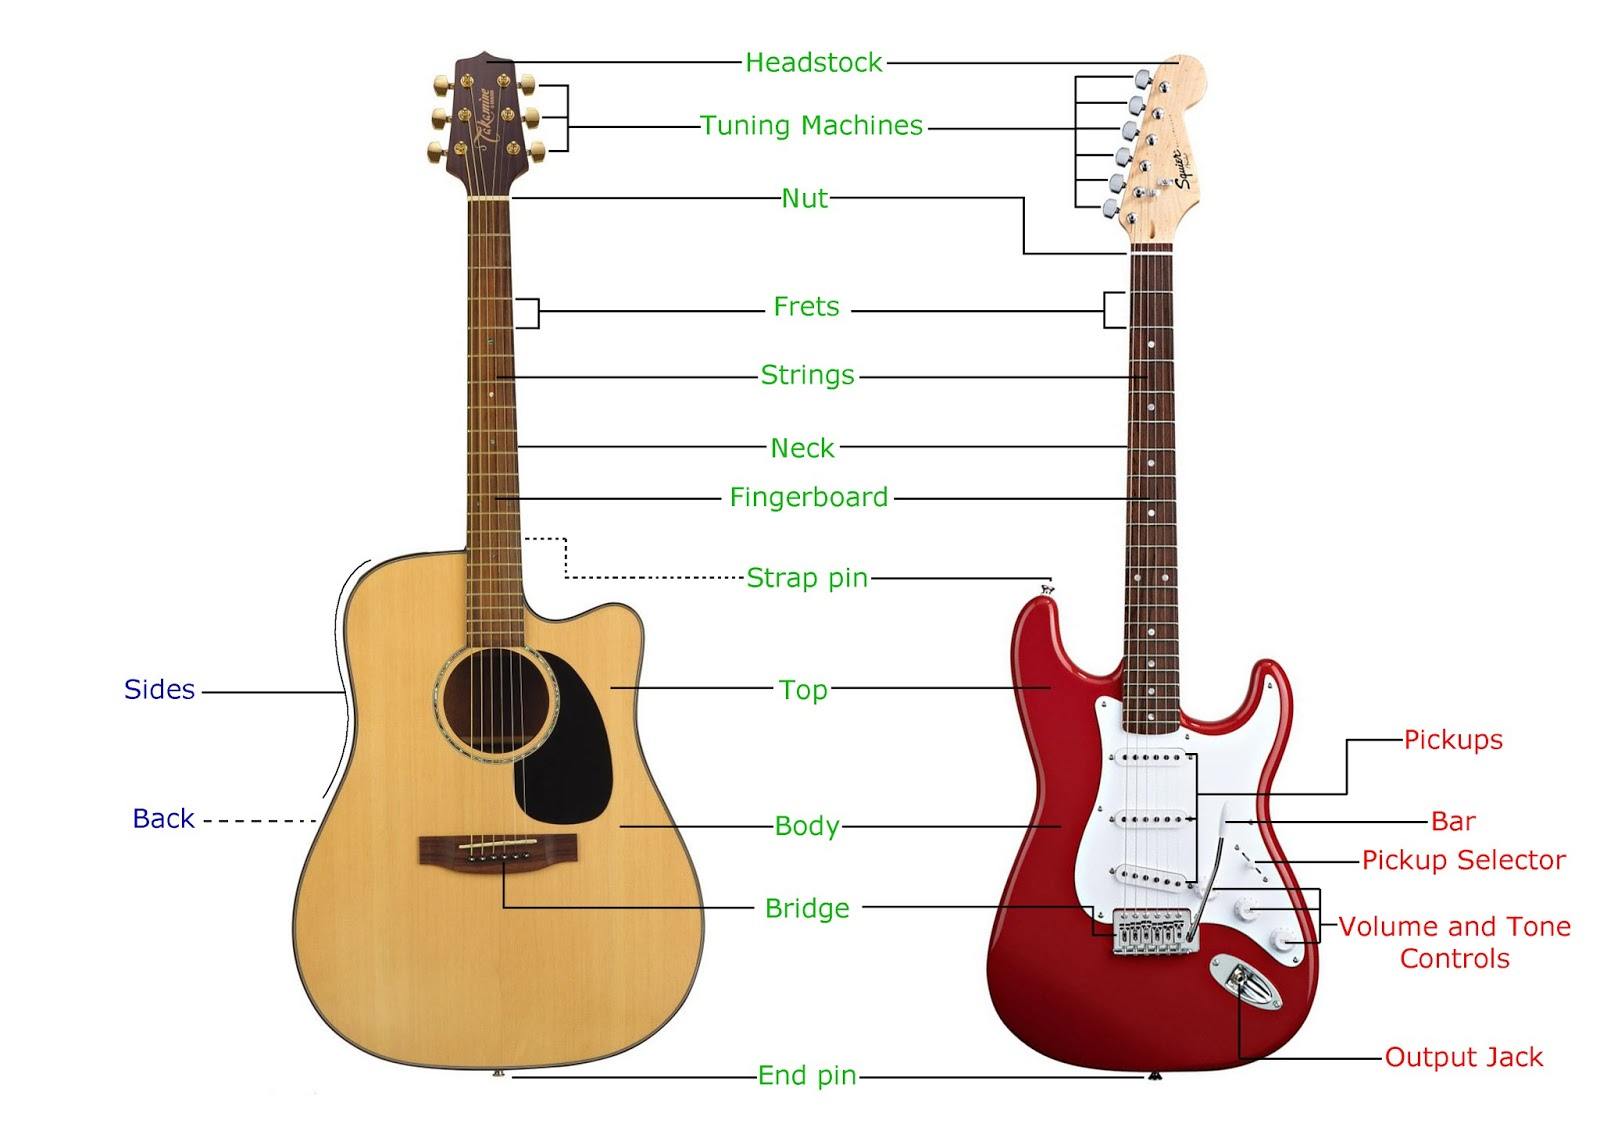 Guitar Bender: The parts of a guitar